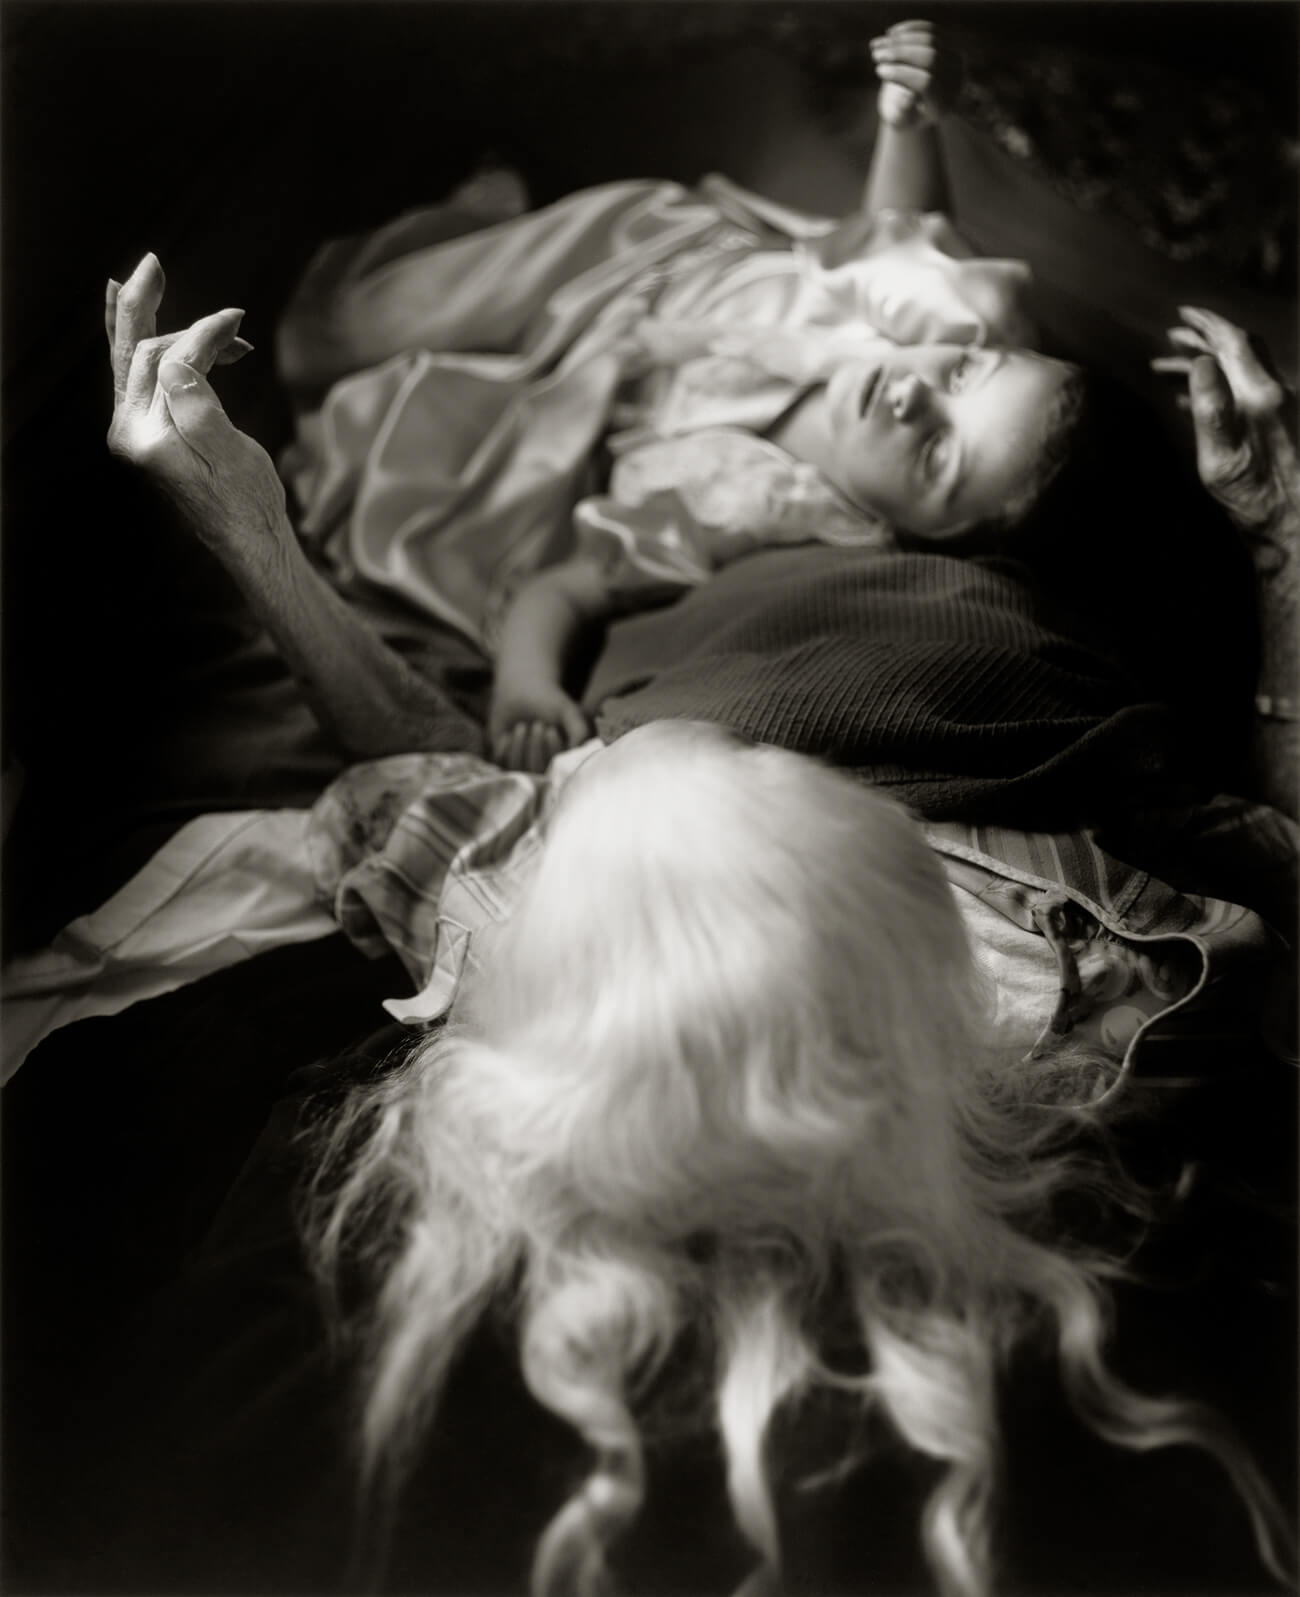 An elderly woman with long white hair lies prone under a blanket, with a young girl lying across her legs.